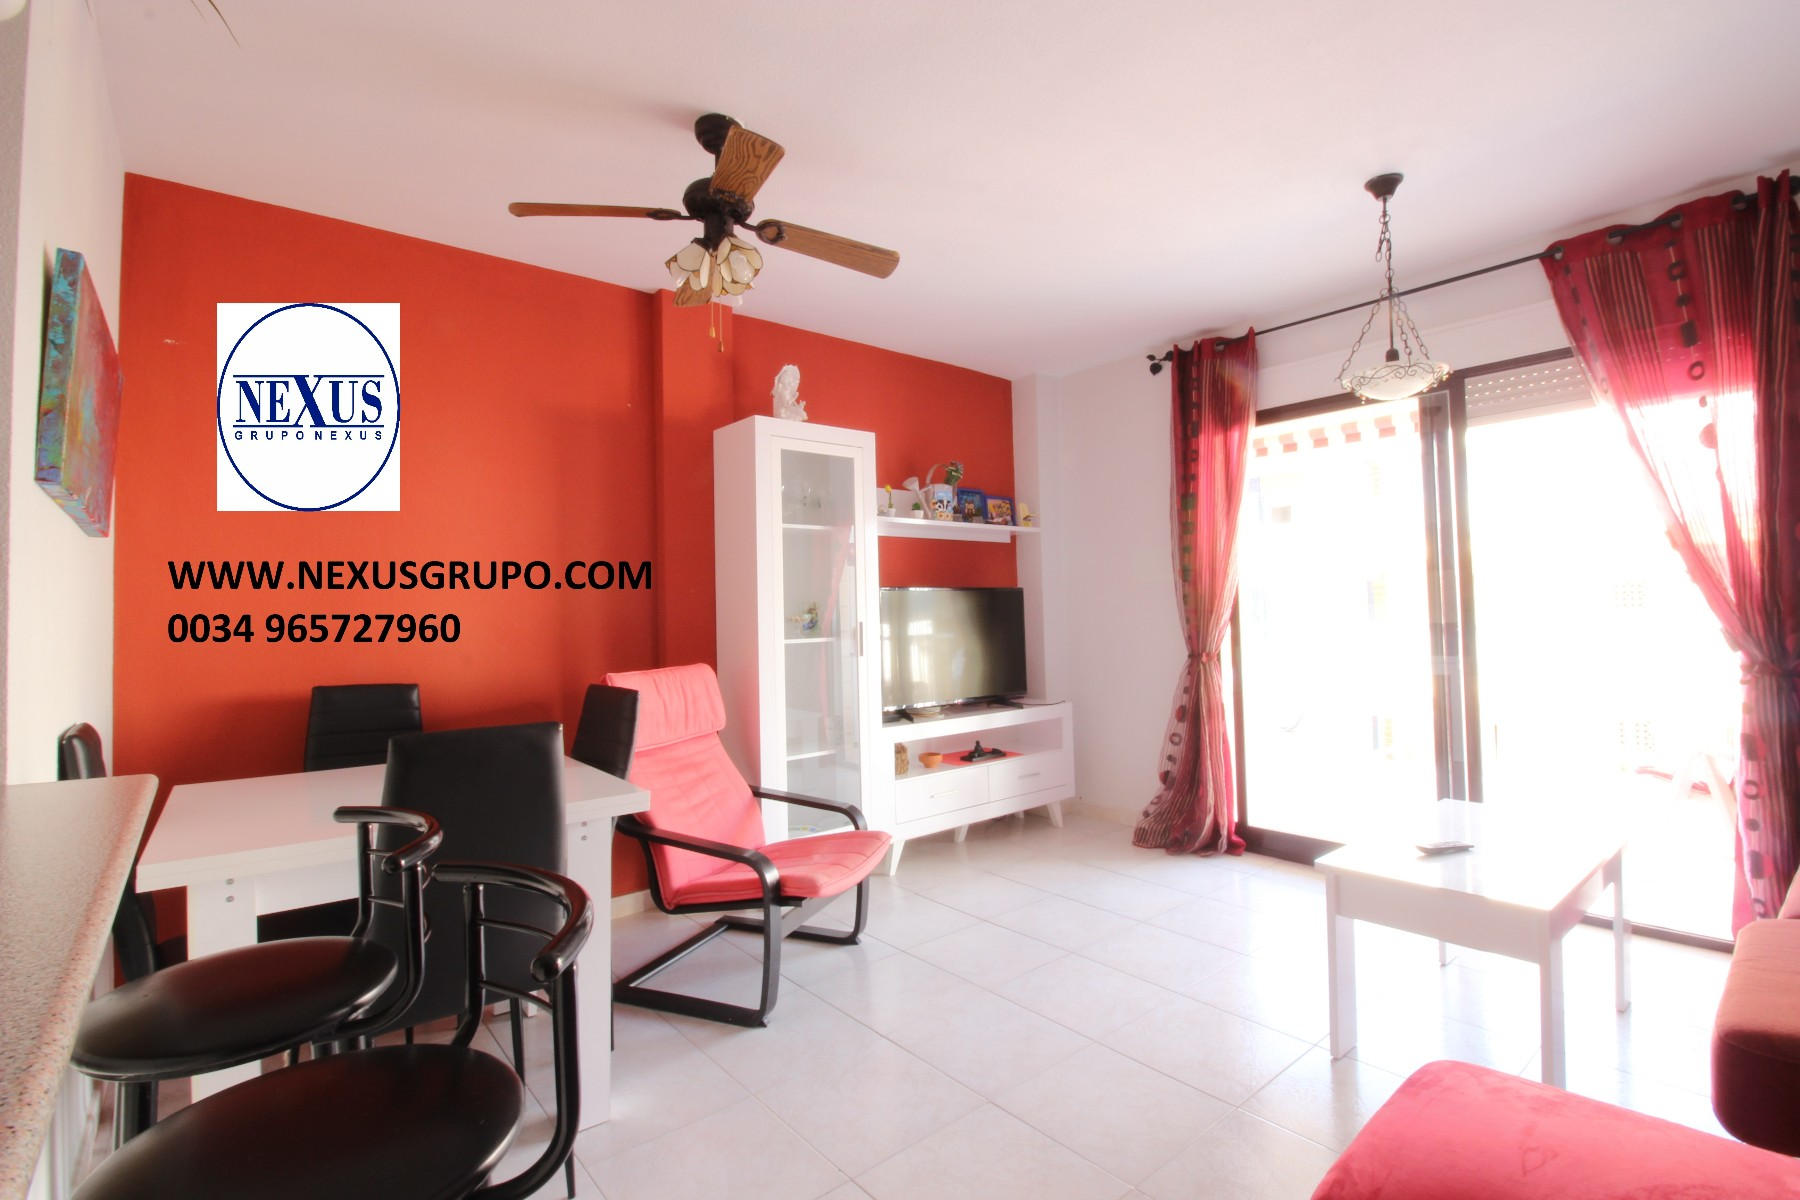 Lovely holidays apartment by the sea side in Nexus Grupo